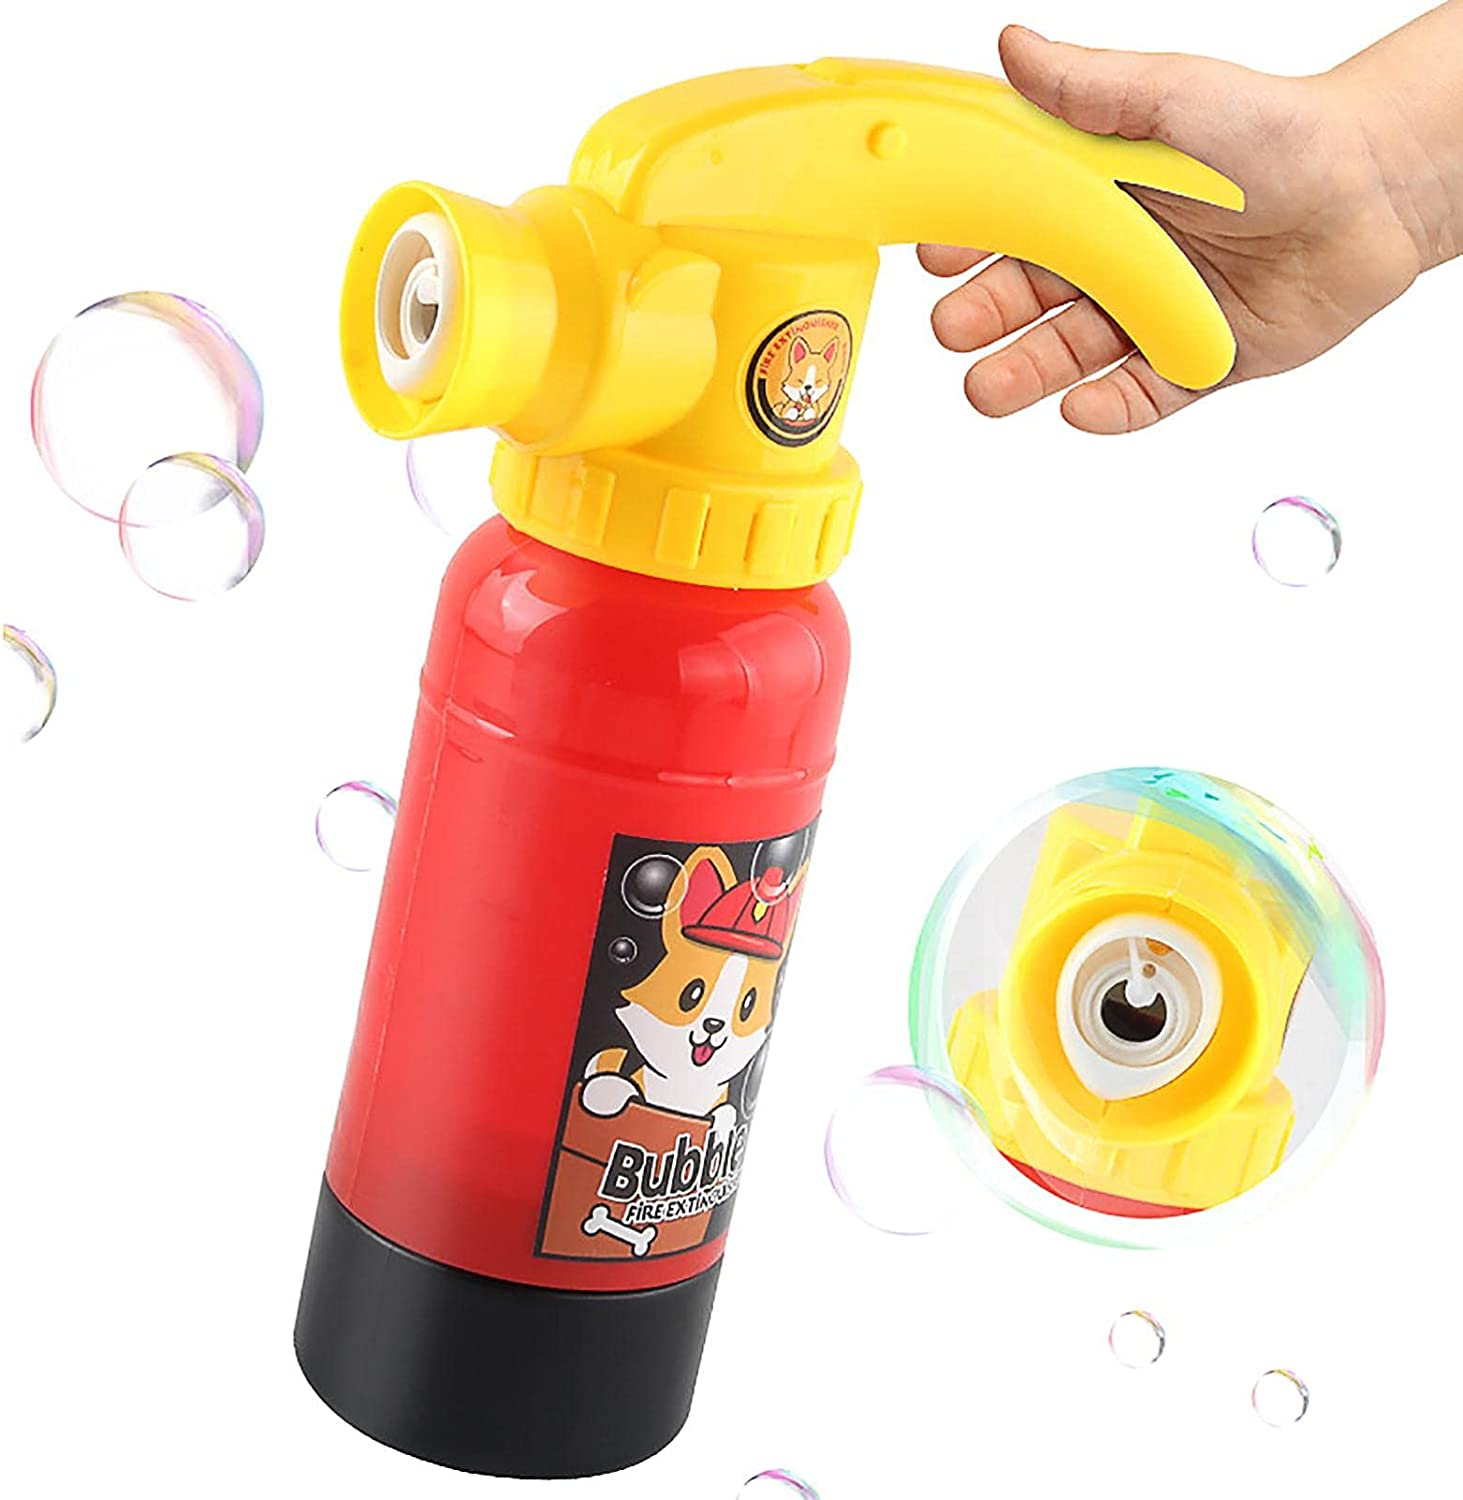 Bubble Fire Extinguisher Toy LightMusi with Detroit Mall Super sale Summer Electric